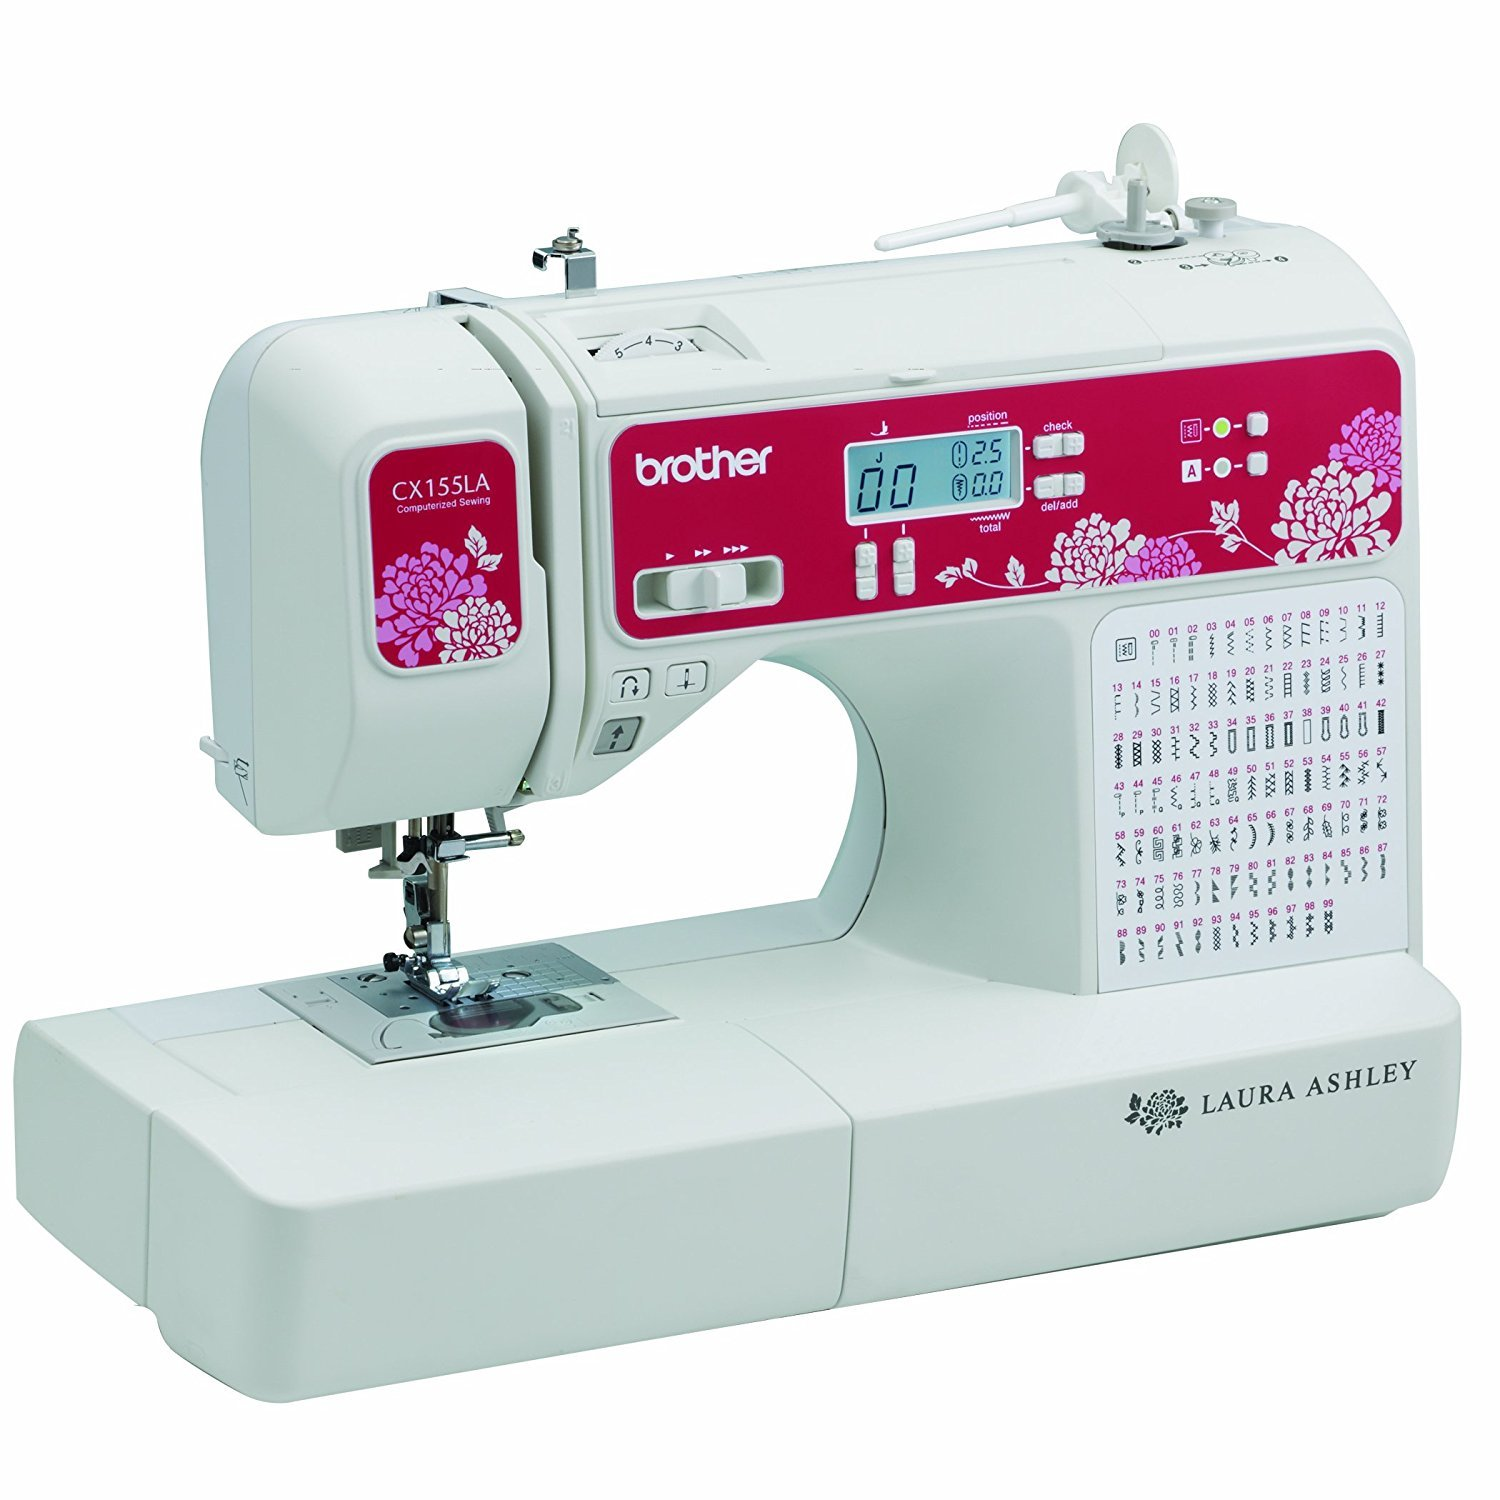 Brother Sewing Laura Ashley CX155LA Limited Edition Sewing & Quilting Machine with Built-in Sewing Font ブラザーソーイングローラーアシュリーCX155LA限定版ソーイング&キルティングマシン内蔵の縫製フォント [並行輸入品]   B07CBZRX7H